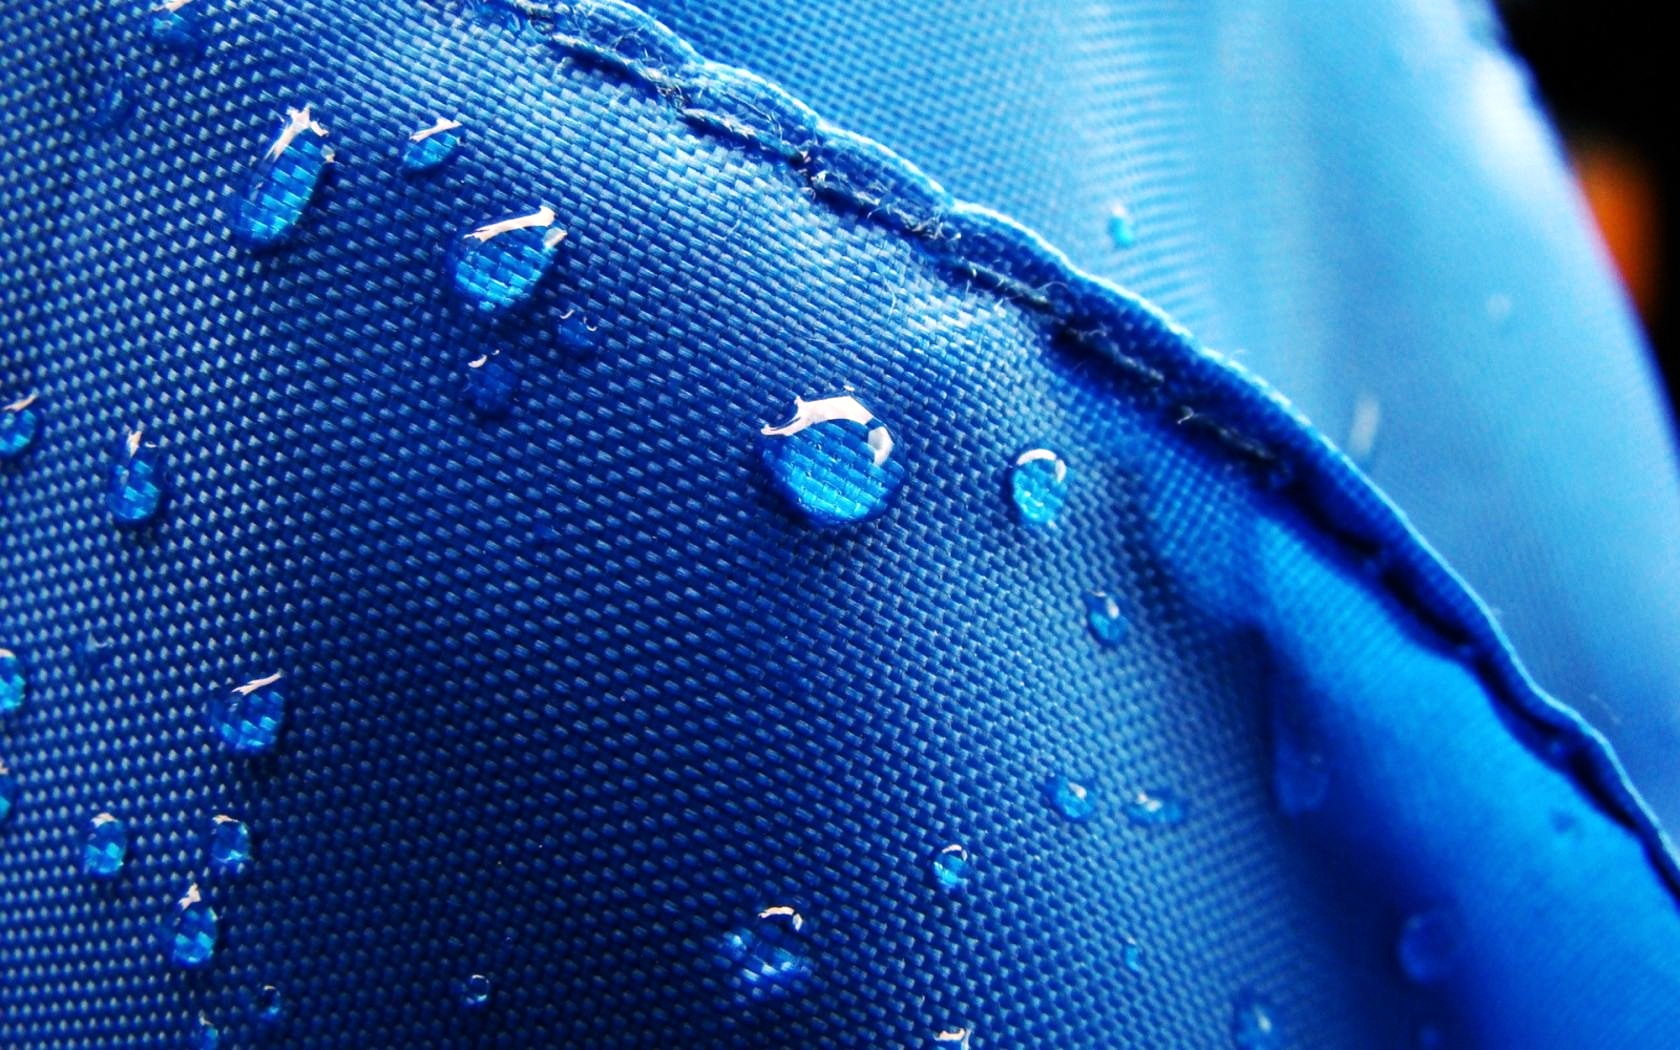 Drops on Texture 254.12 Kb